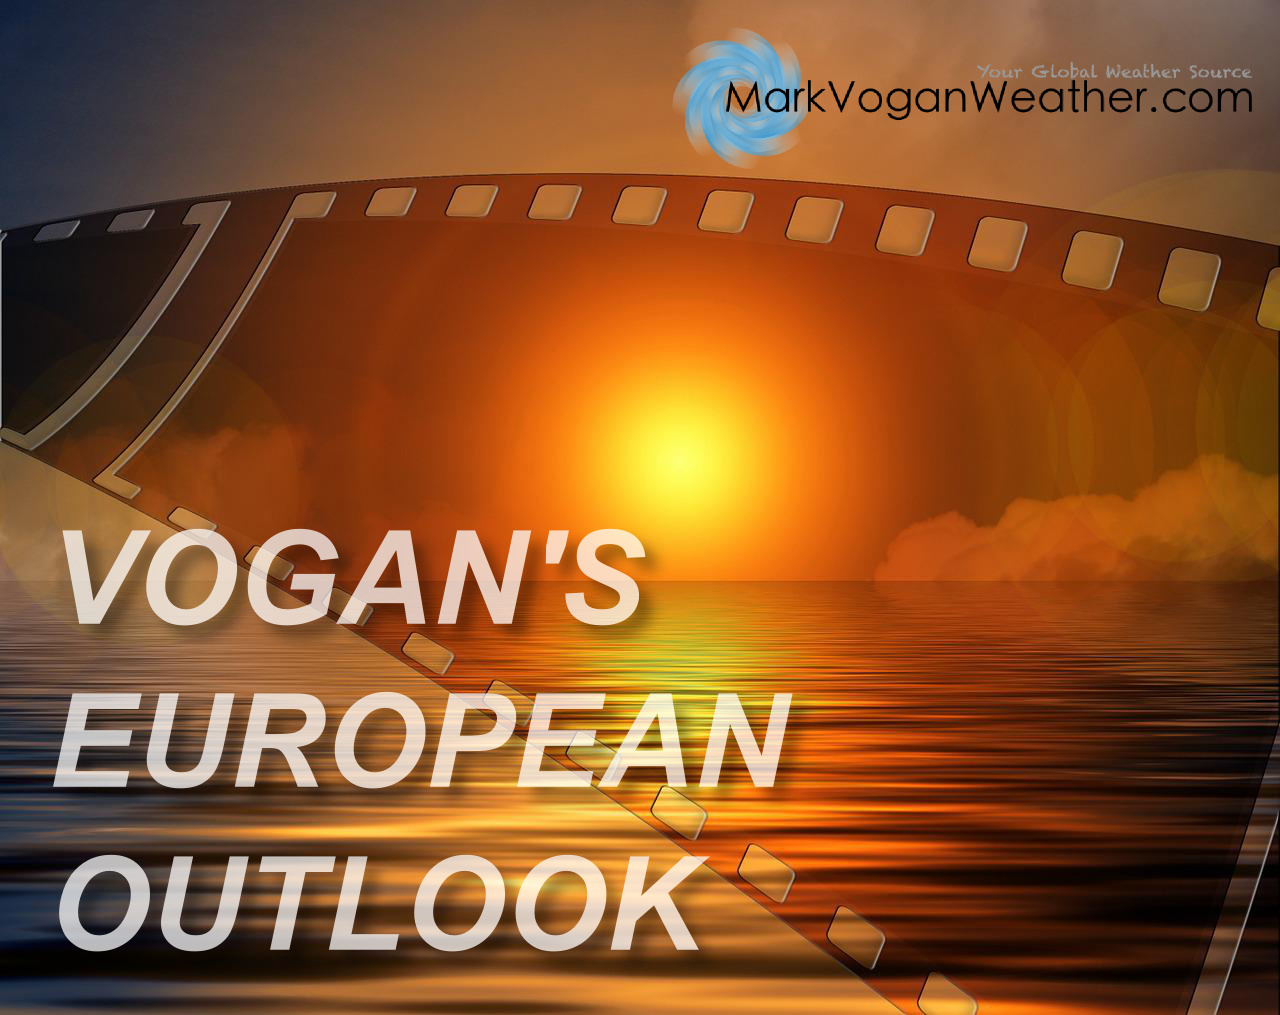 SUN 21 SEP: VOGAN'S EUROPEAN OUTLOOK